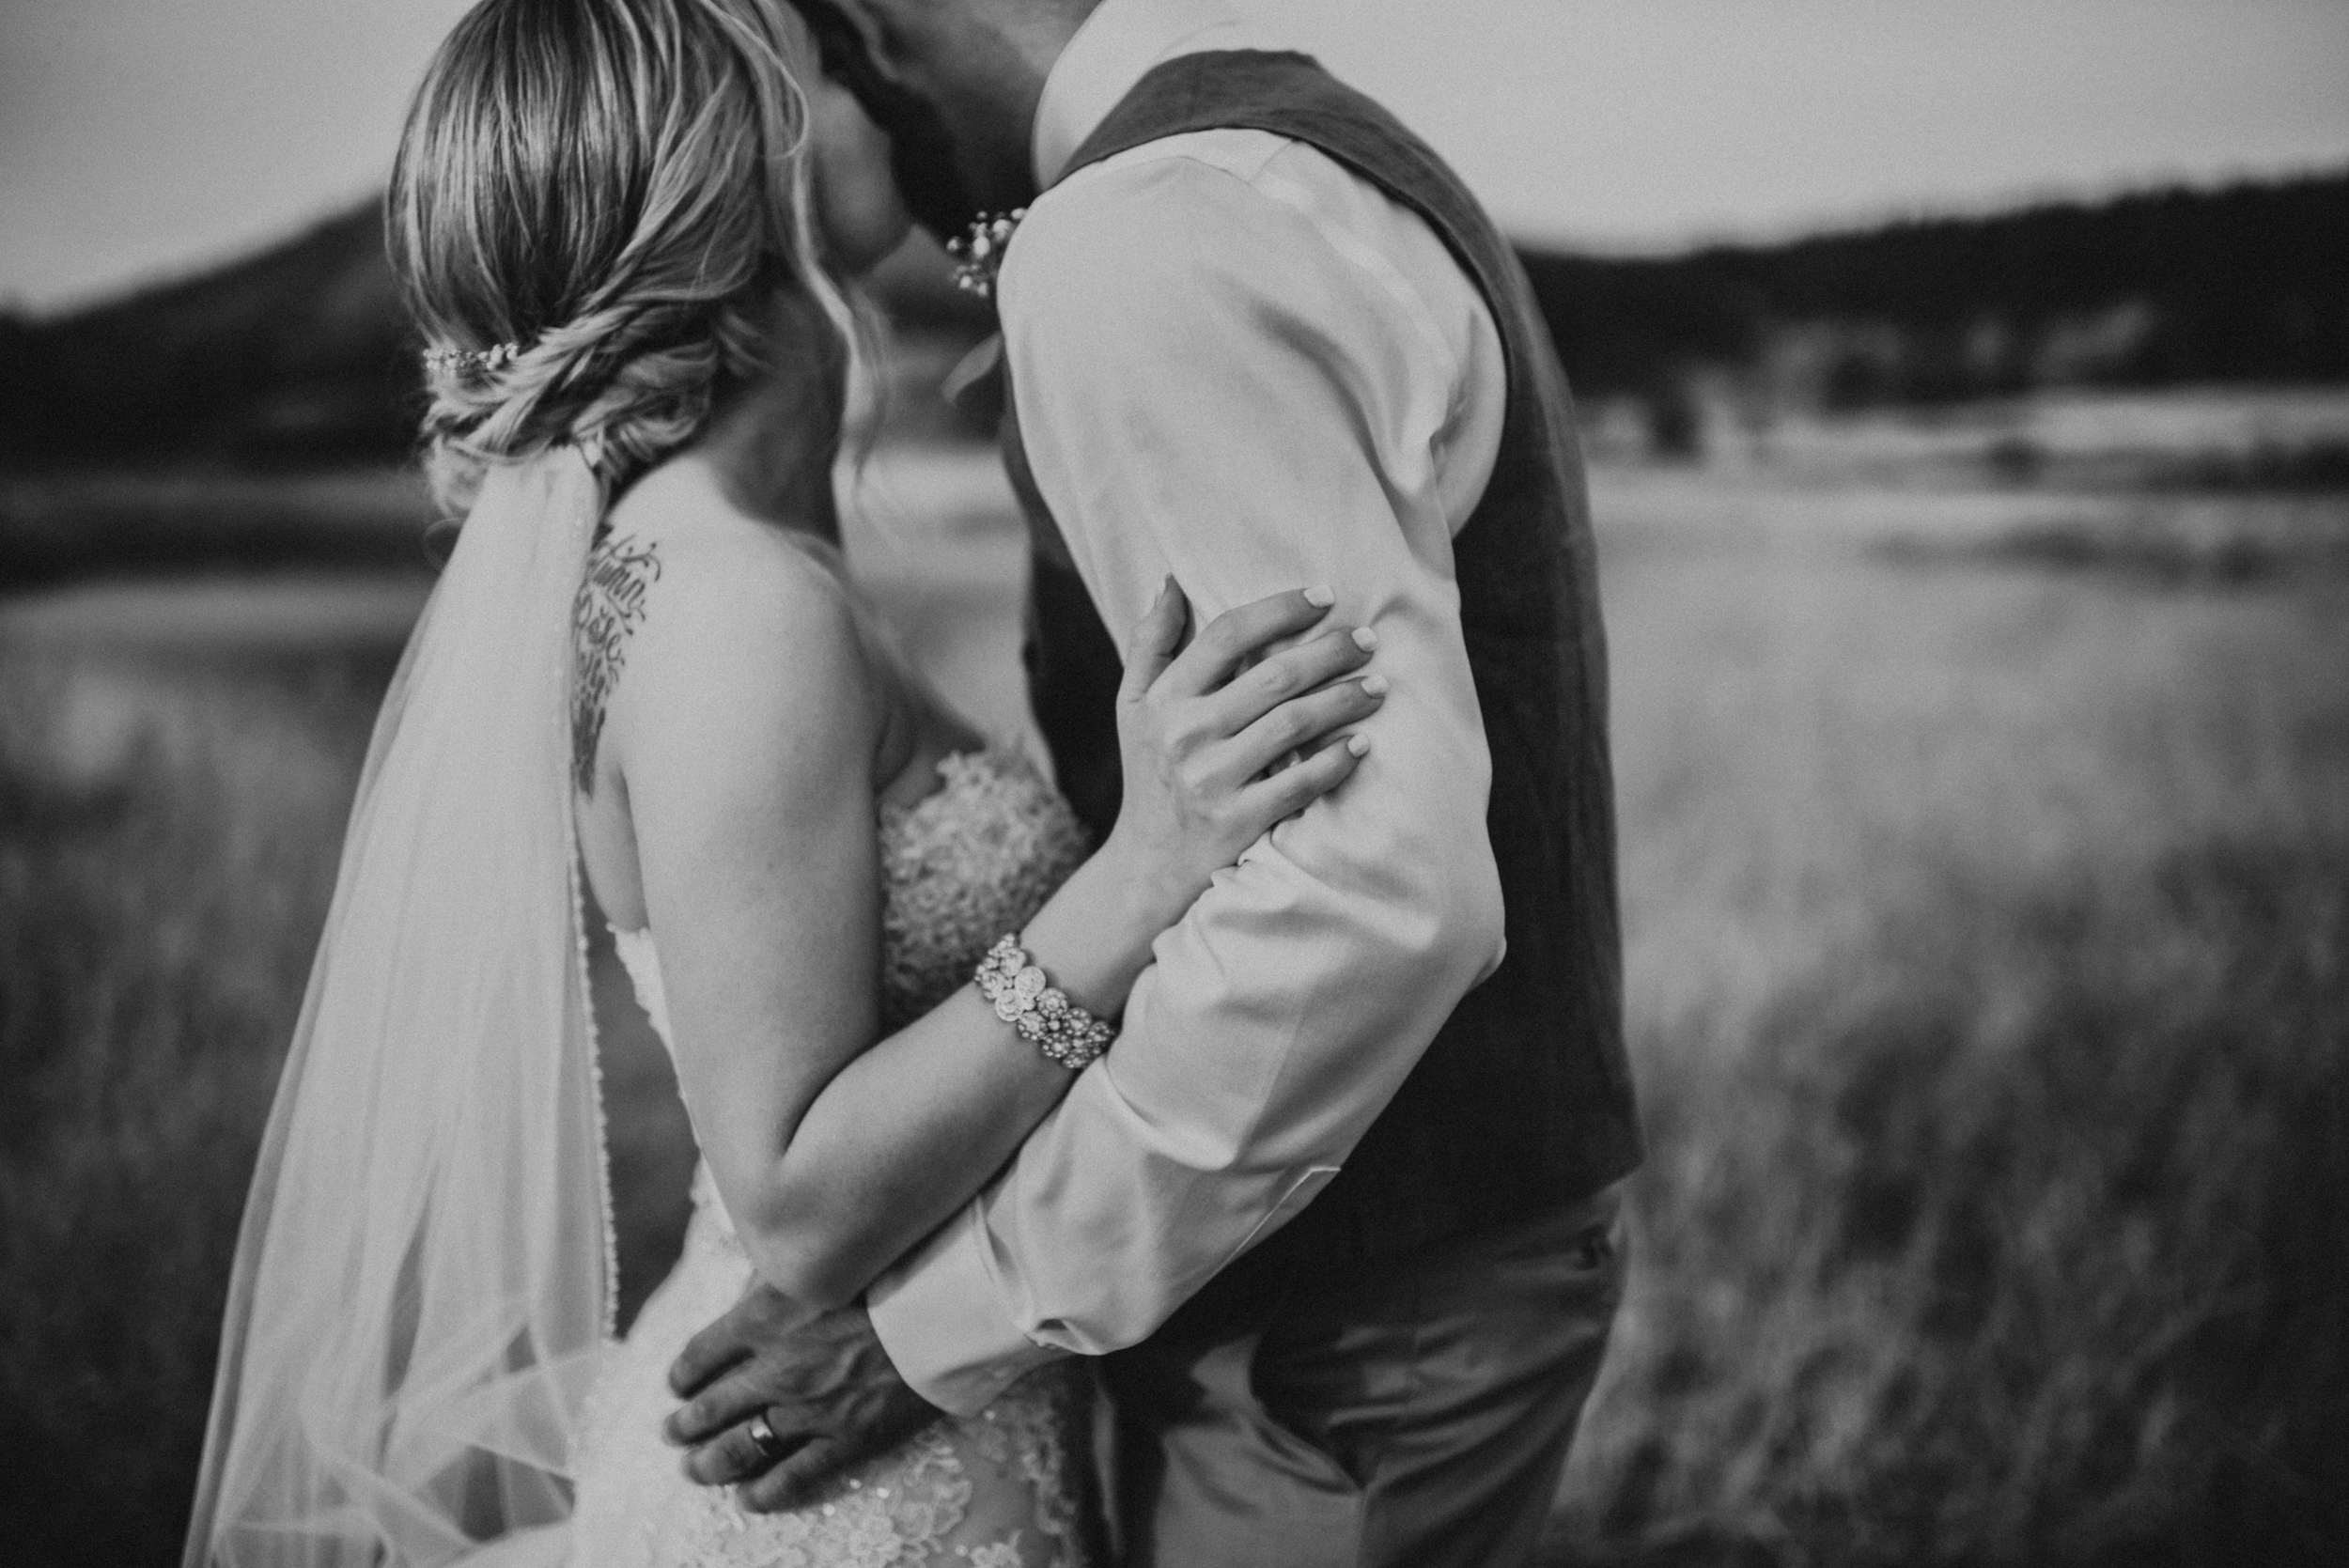 Wedding at The Cattle Barn in Cle Elum Washington | Megan & Ronny